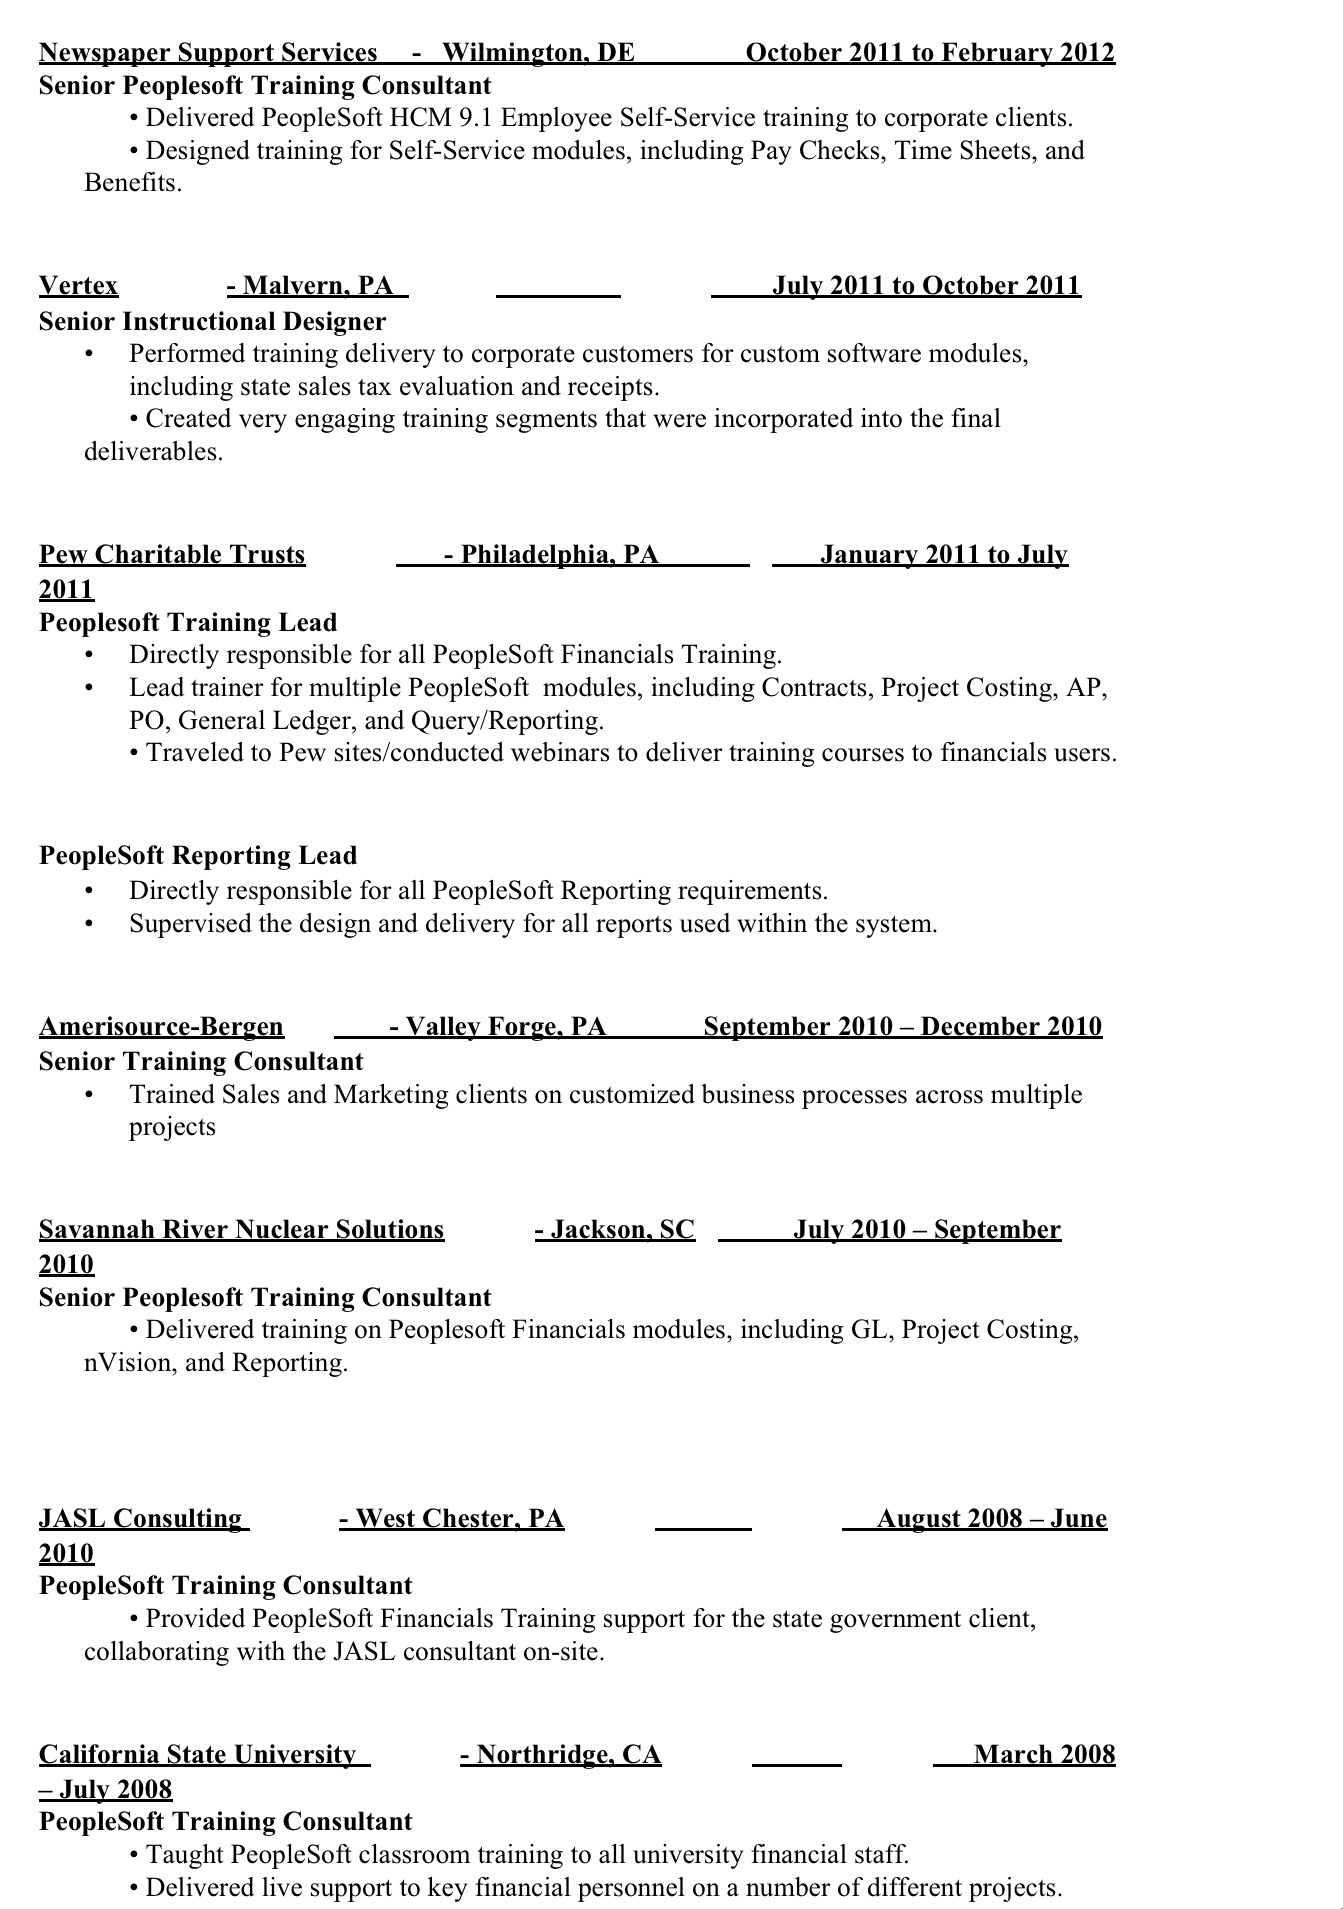 Instructional Designer Resume Template Senior Peoplesoft Instructional Designer Resume Let 39s